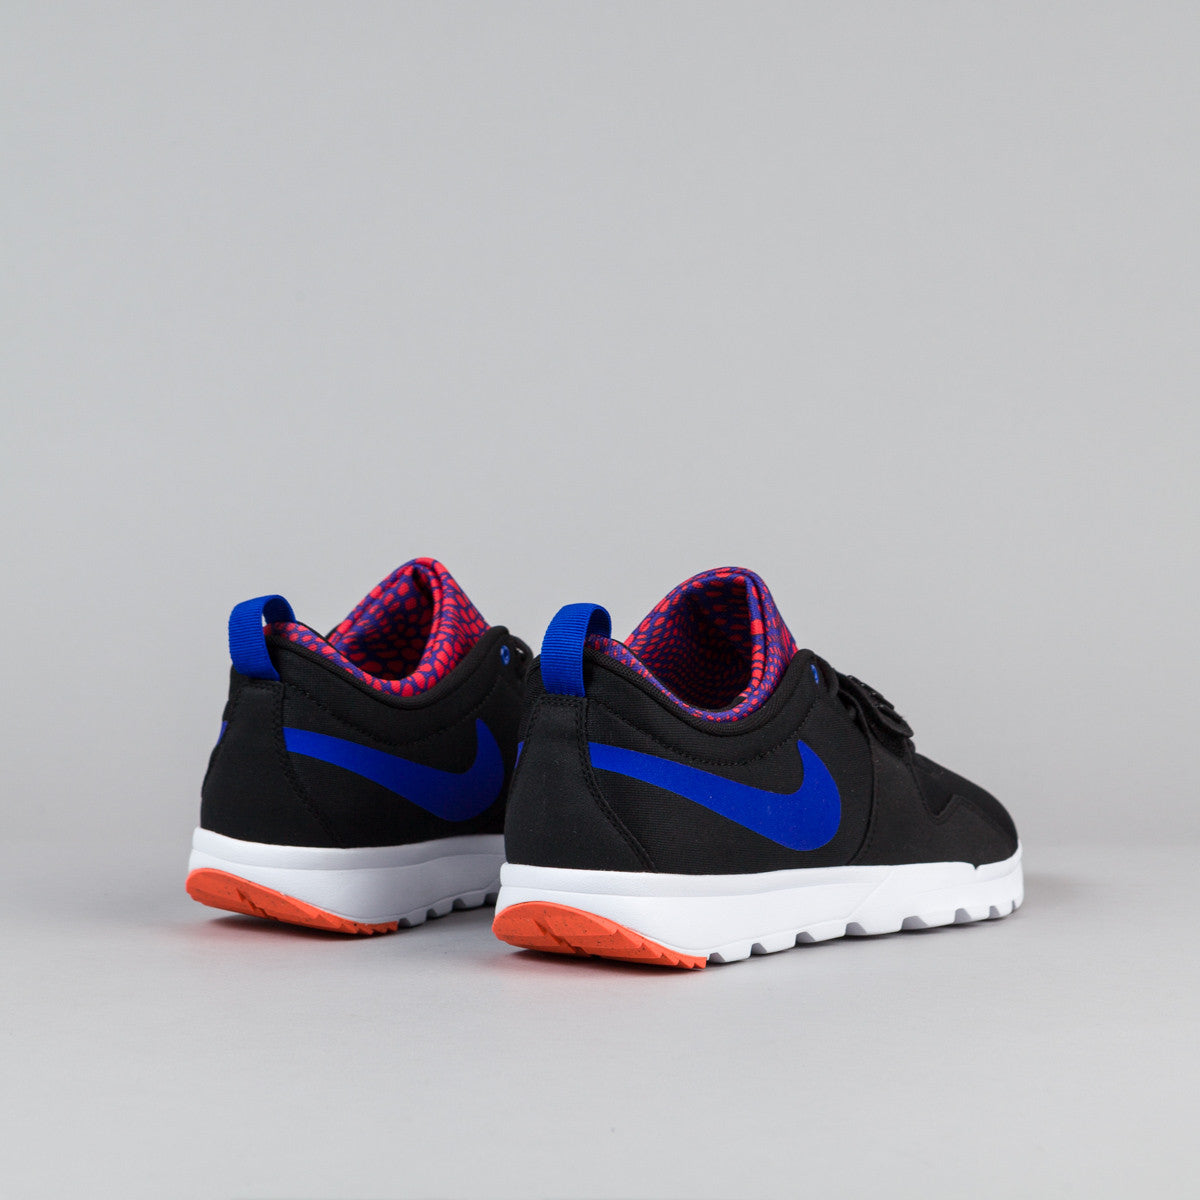 Nike SB Trainerendor Shoes - Black / Racer Blue - White - Total Crimson